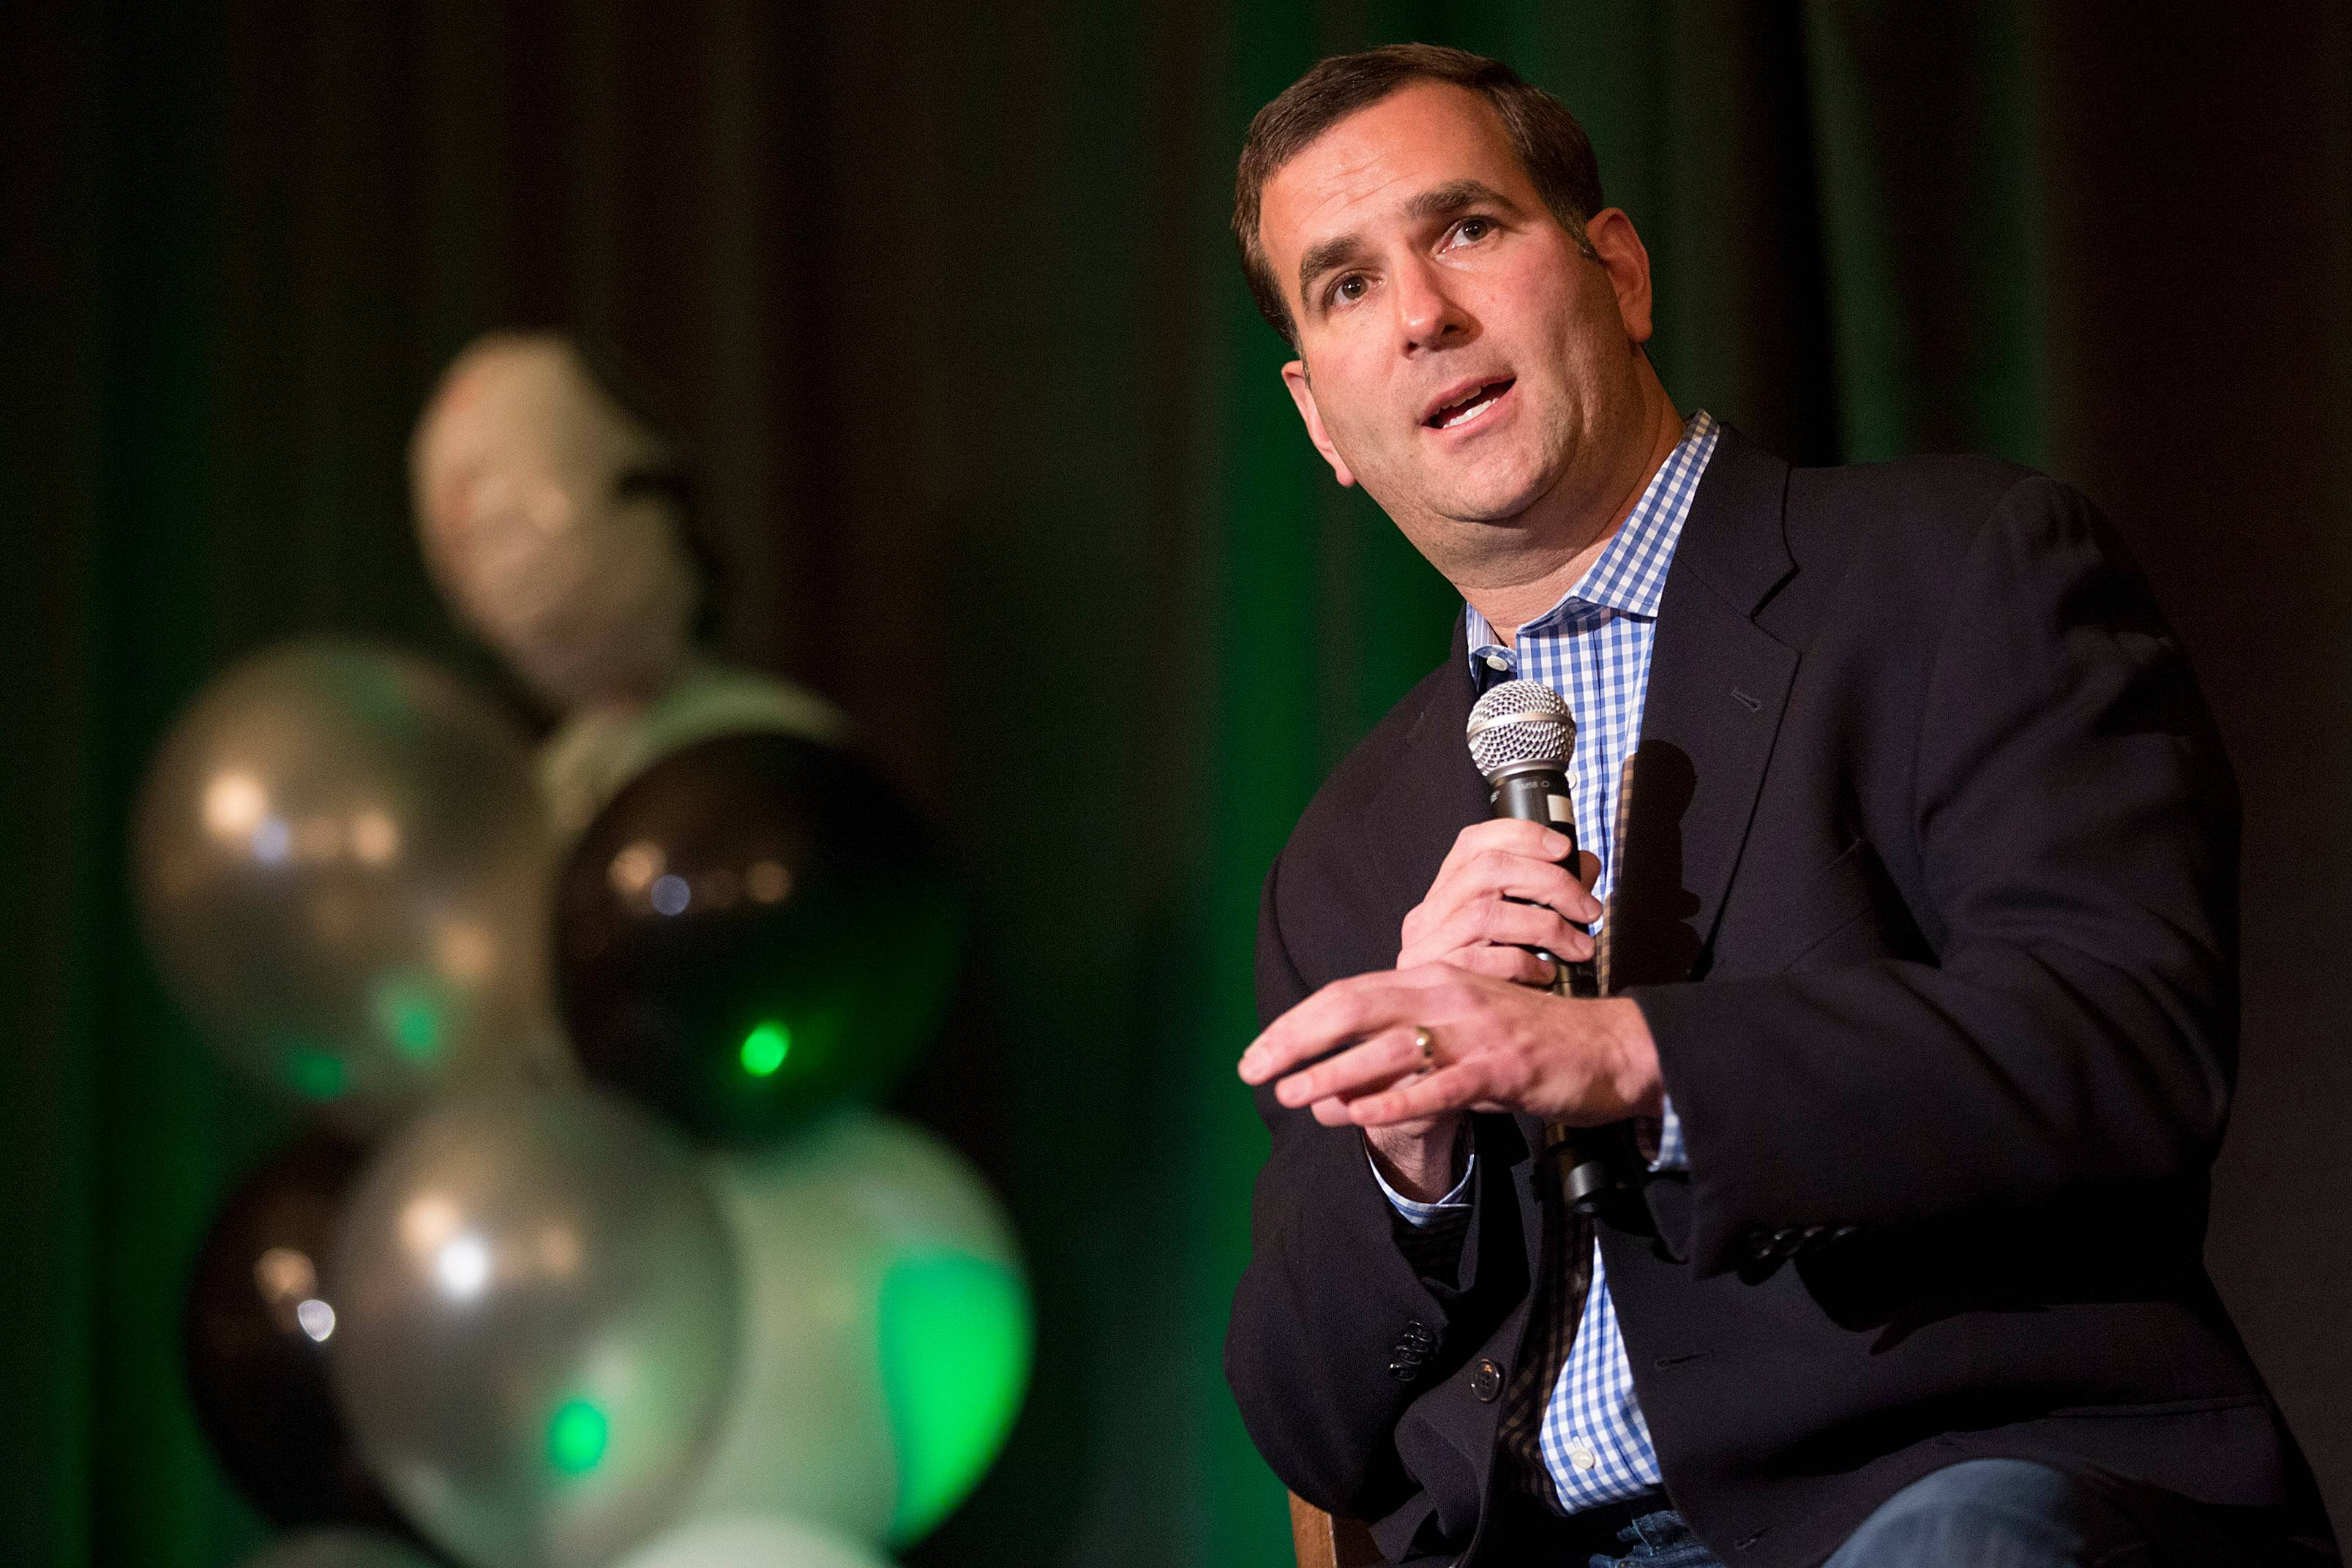 While Chicago White Sox general manager Rick Hahn has several new prospects to introduce at SoxFest this weekend, there are still more deals to be made.